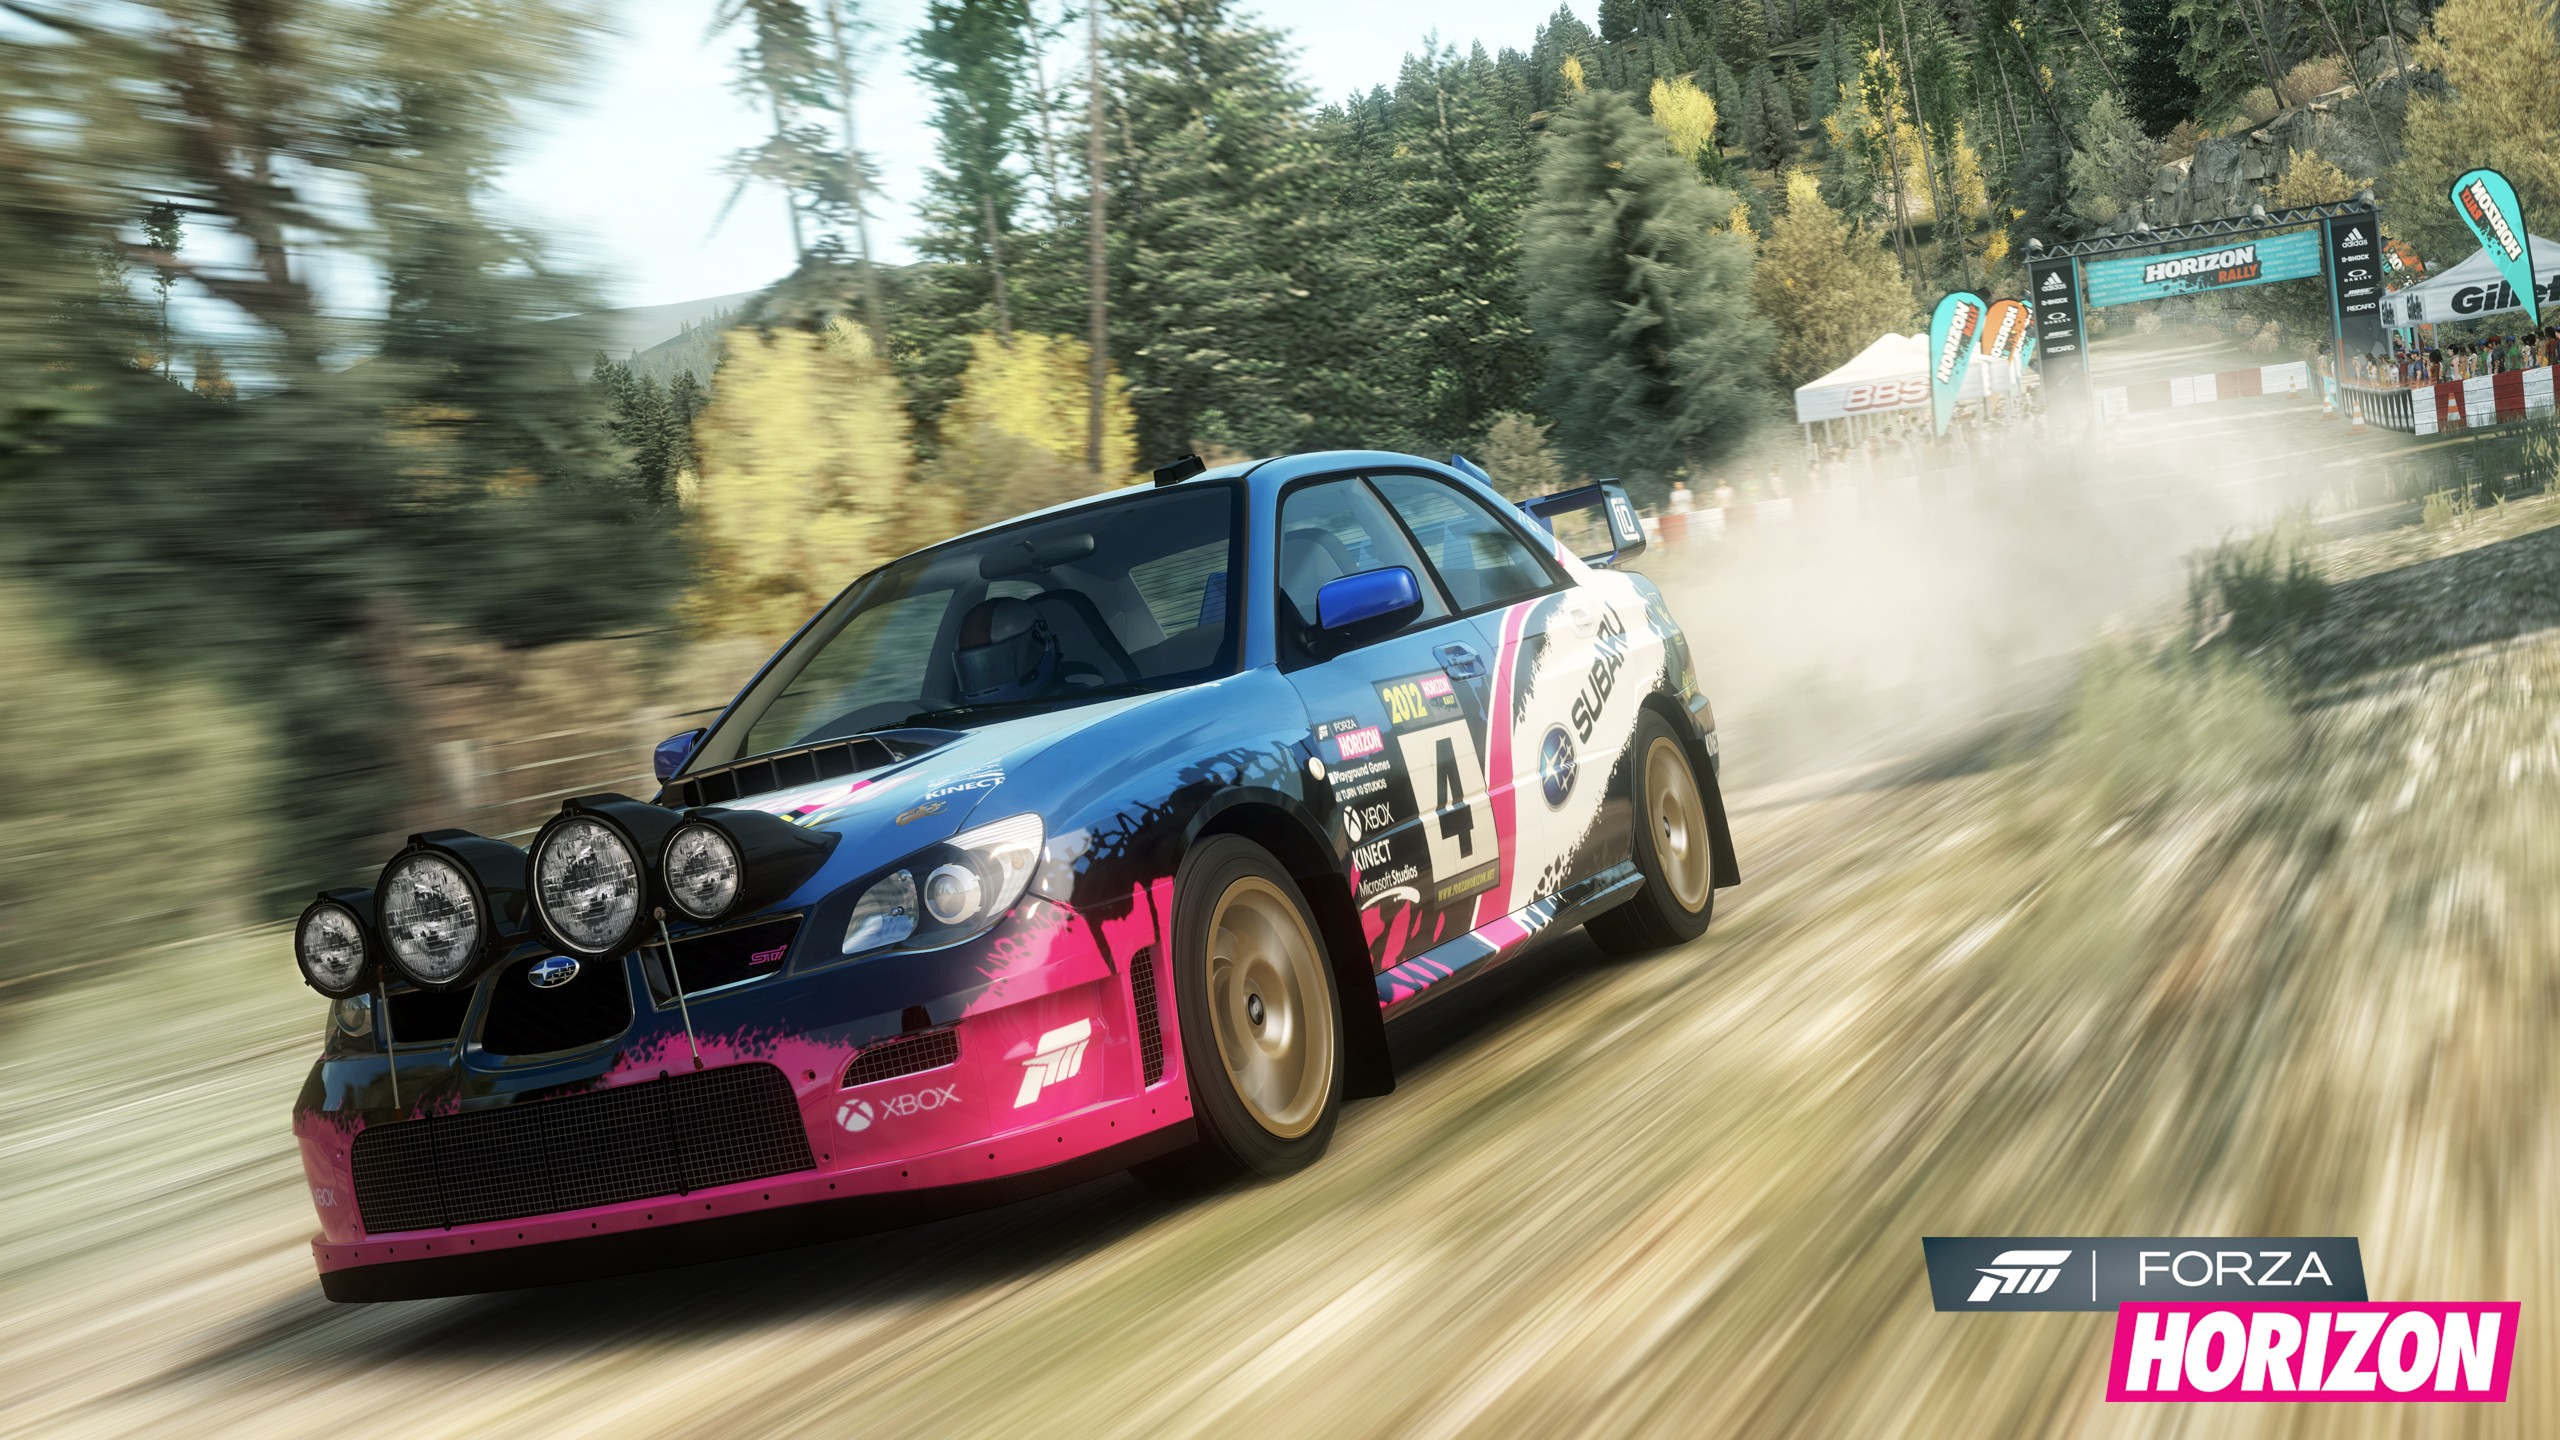 Video games cars rally artwork vehicles racing WRC Mini Countryman ...